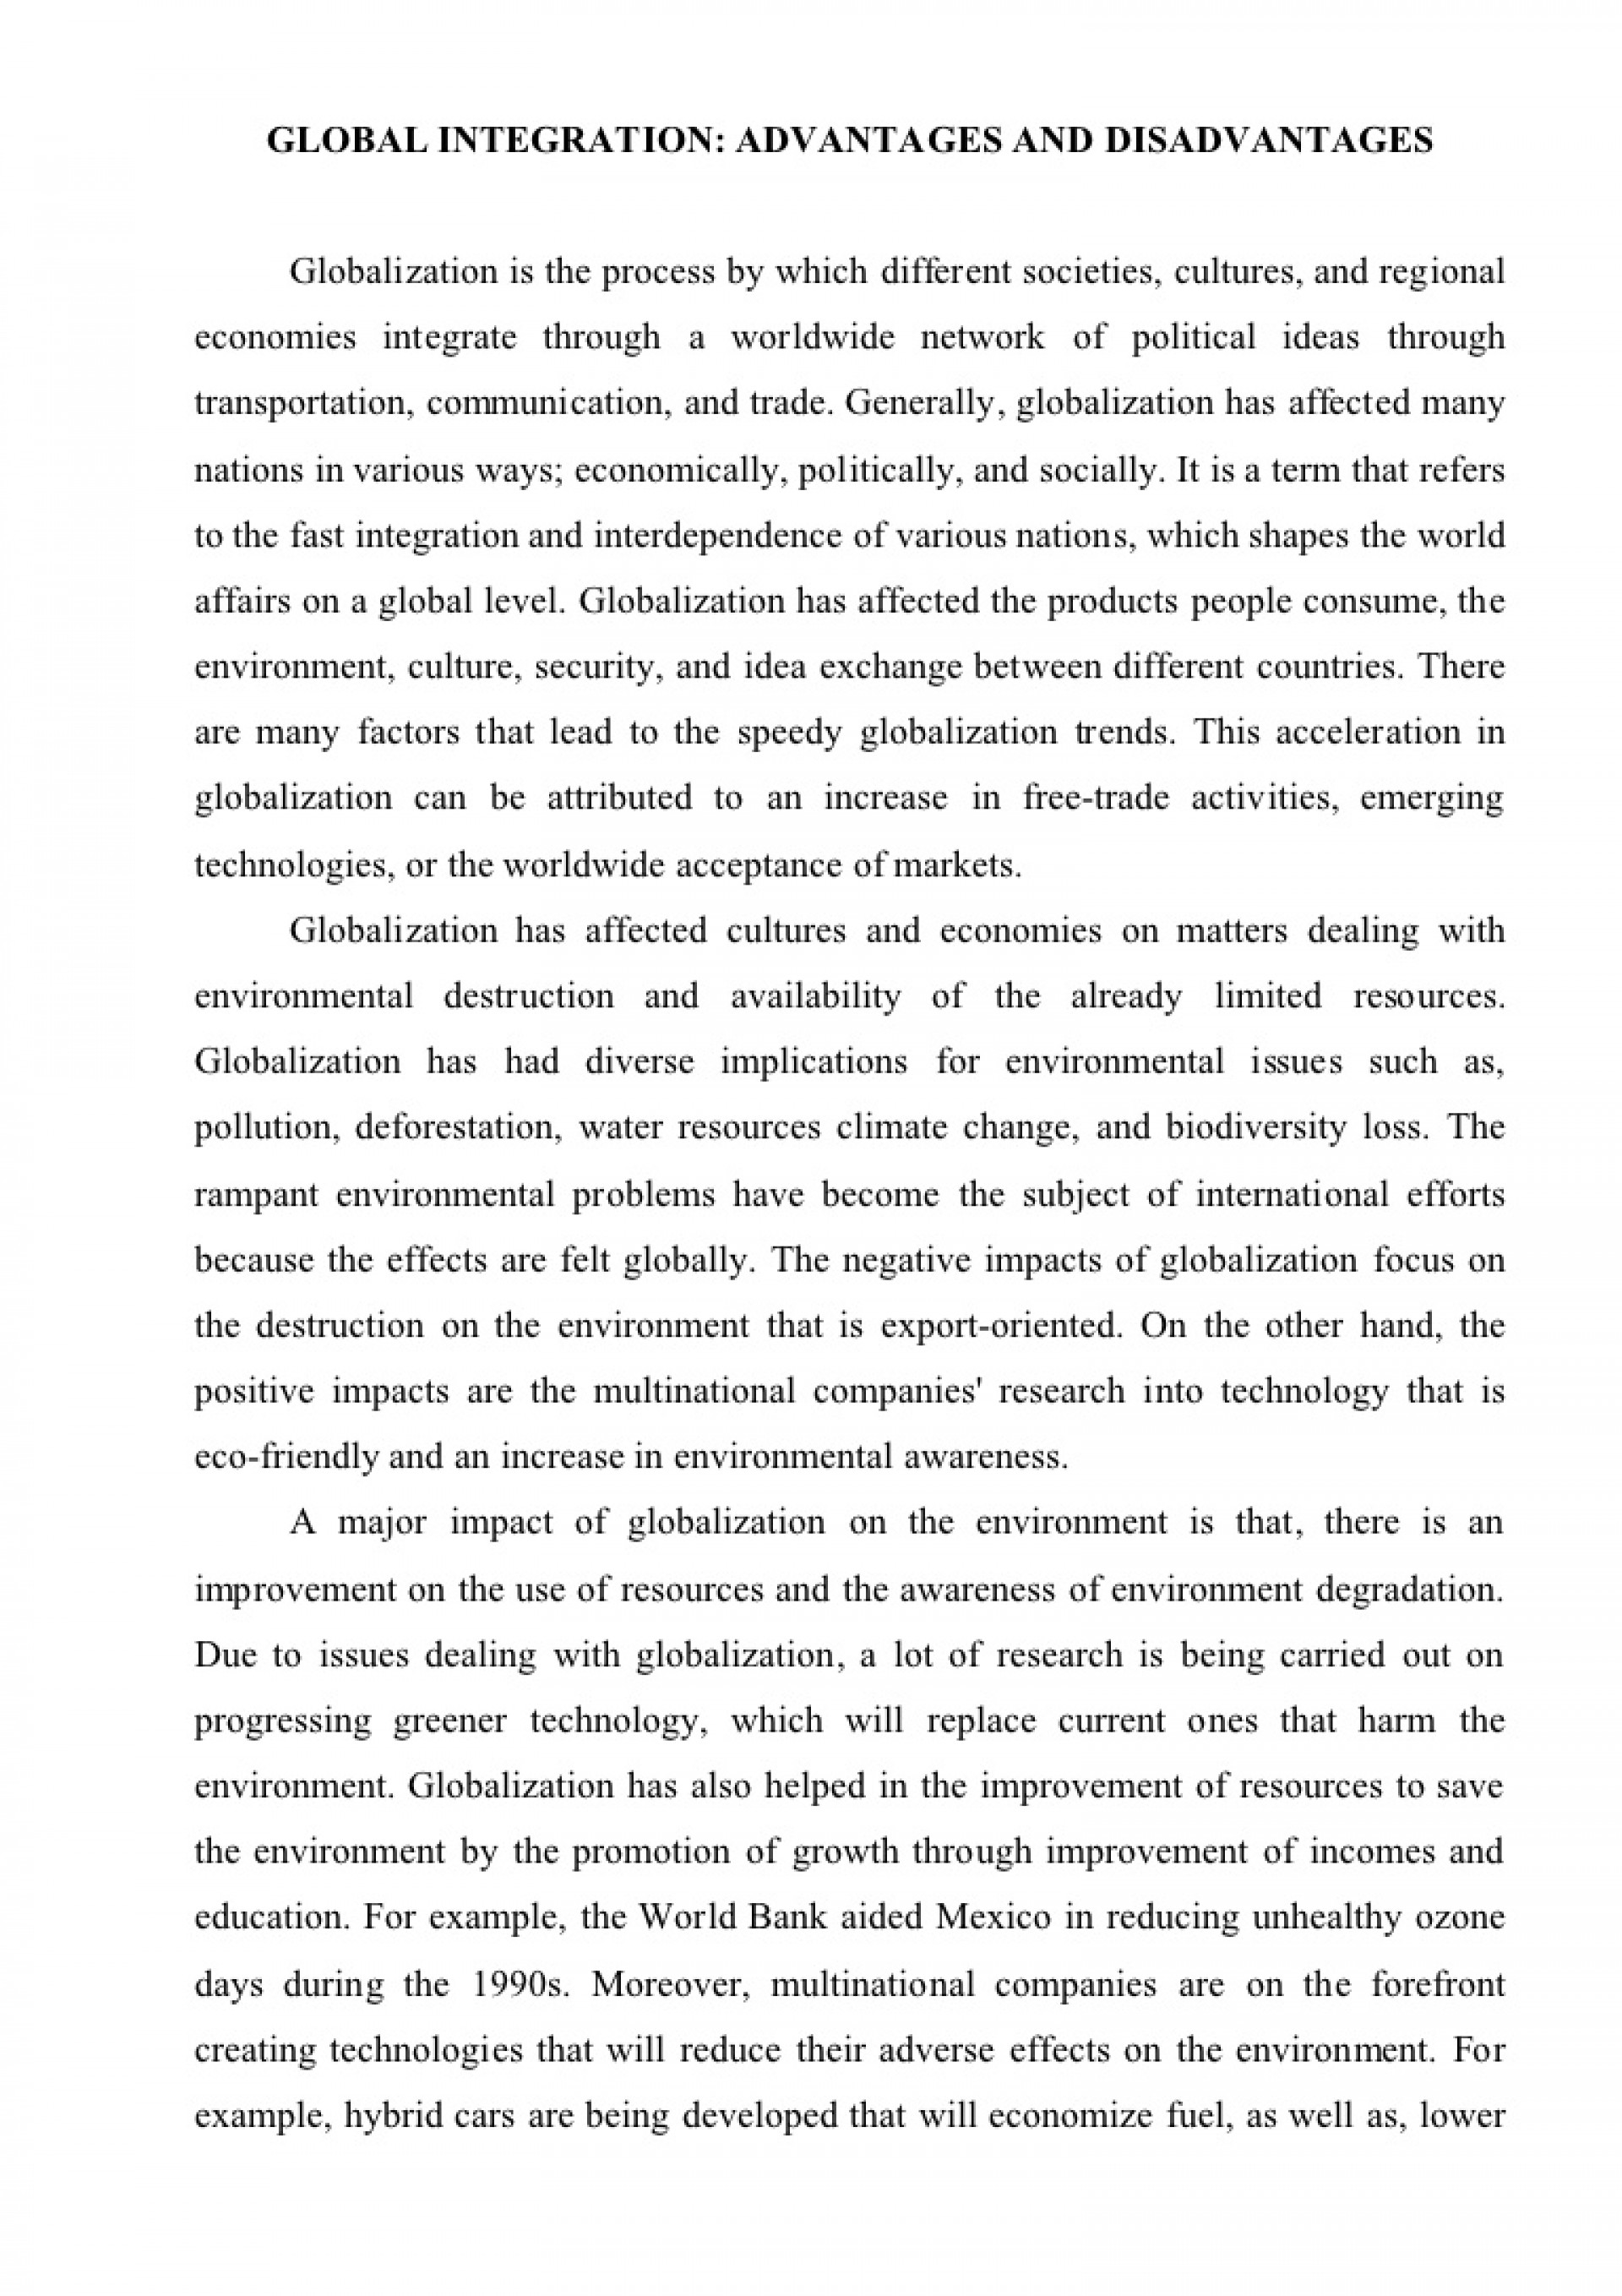 021 Essayglobalization Phpapp02 Thumbnail Essay Example Advantage And Disadvantage Of Shocking Science Advantages Disadvantages With Quotes In Marathi Urdu 1920